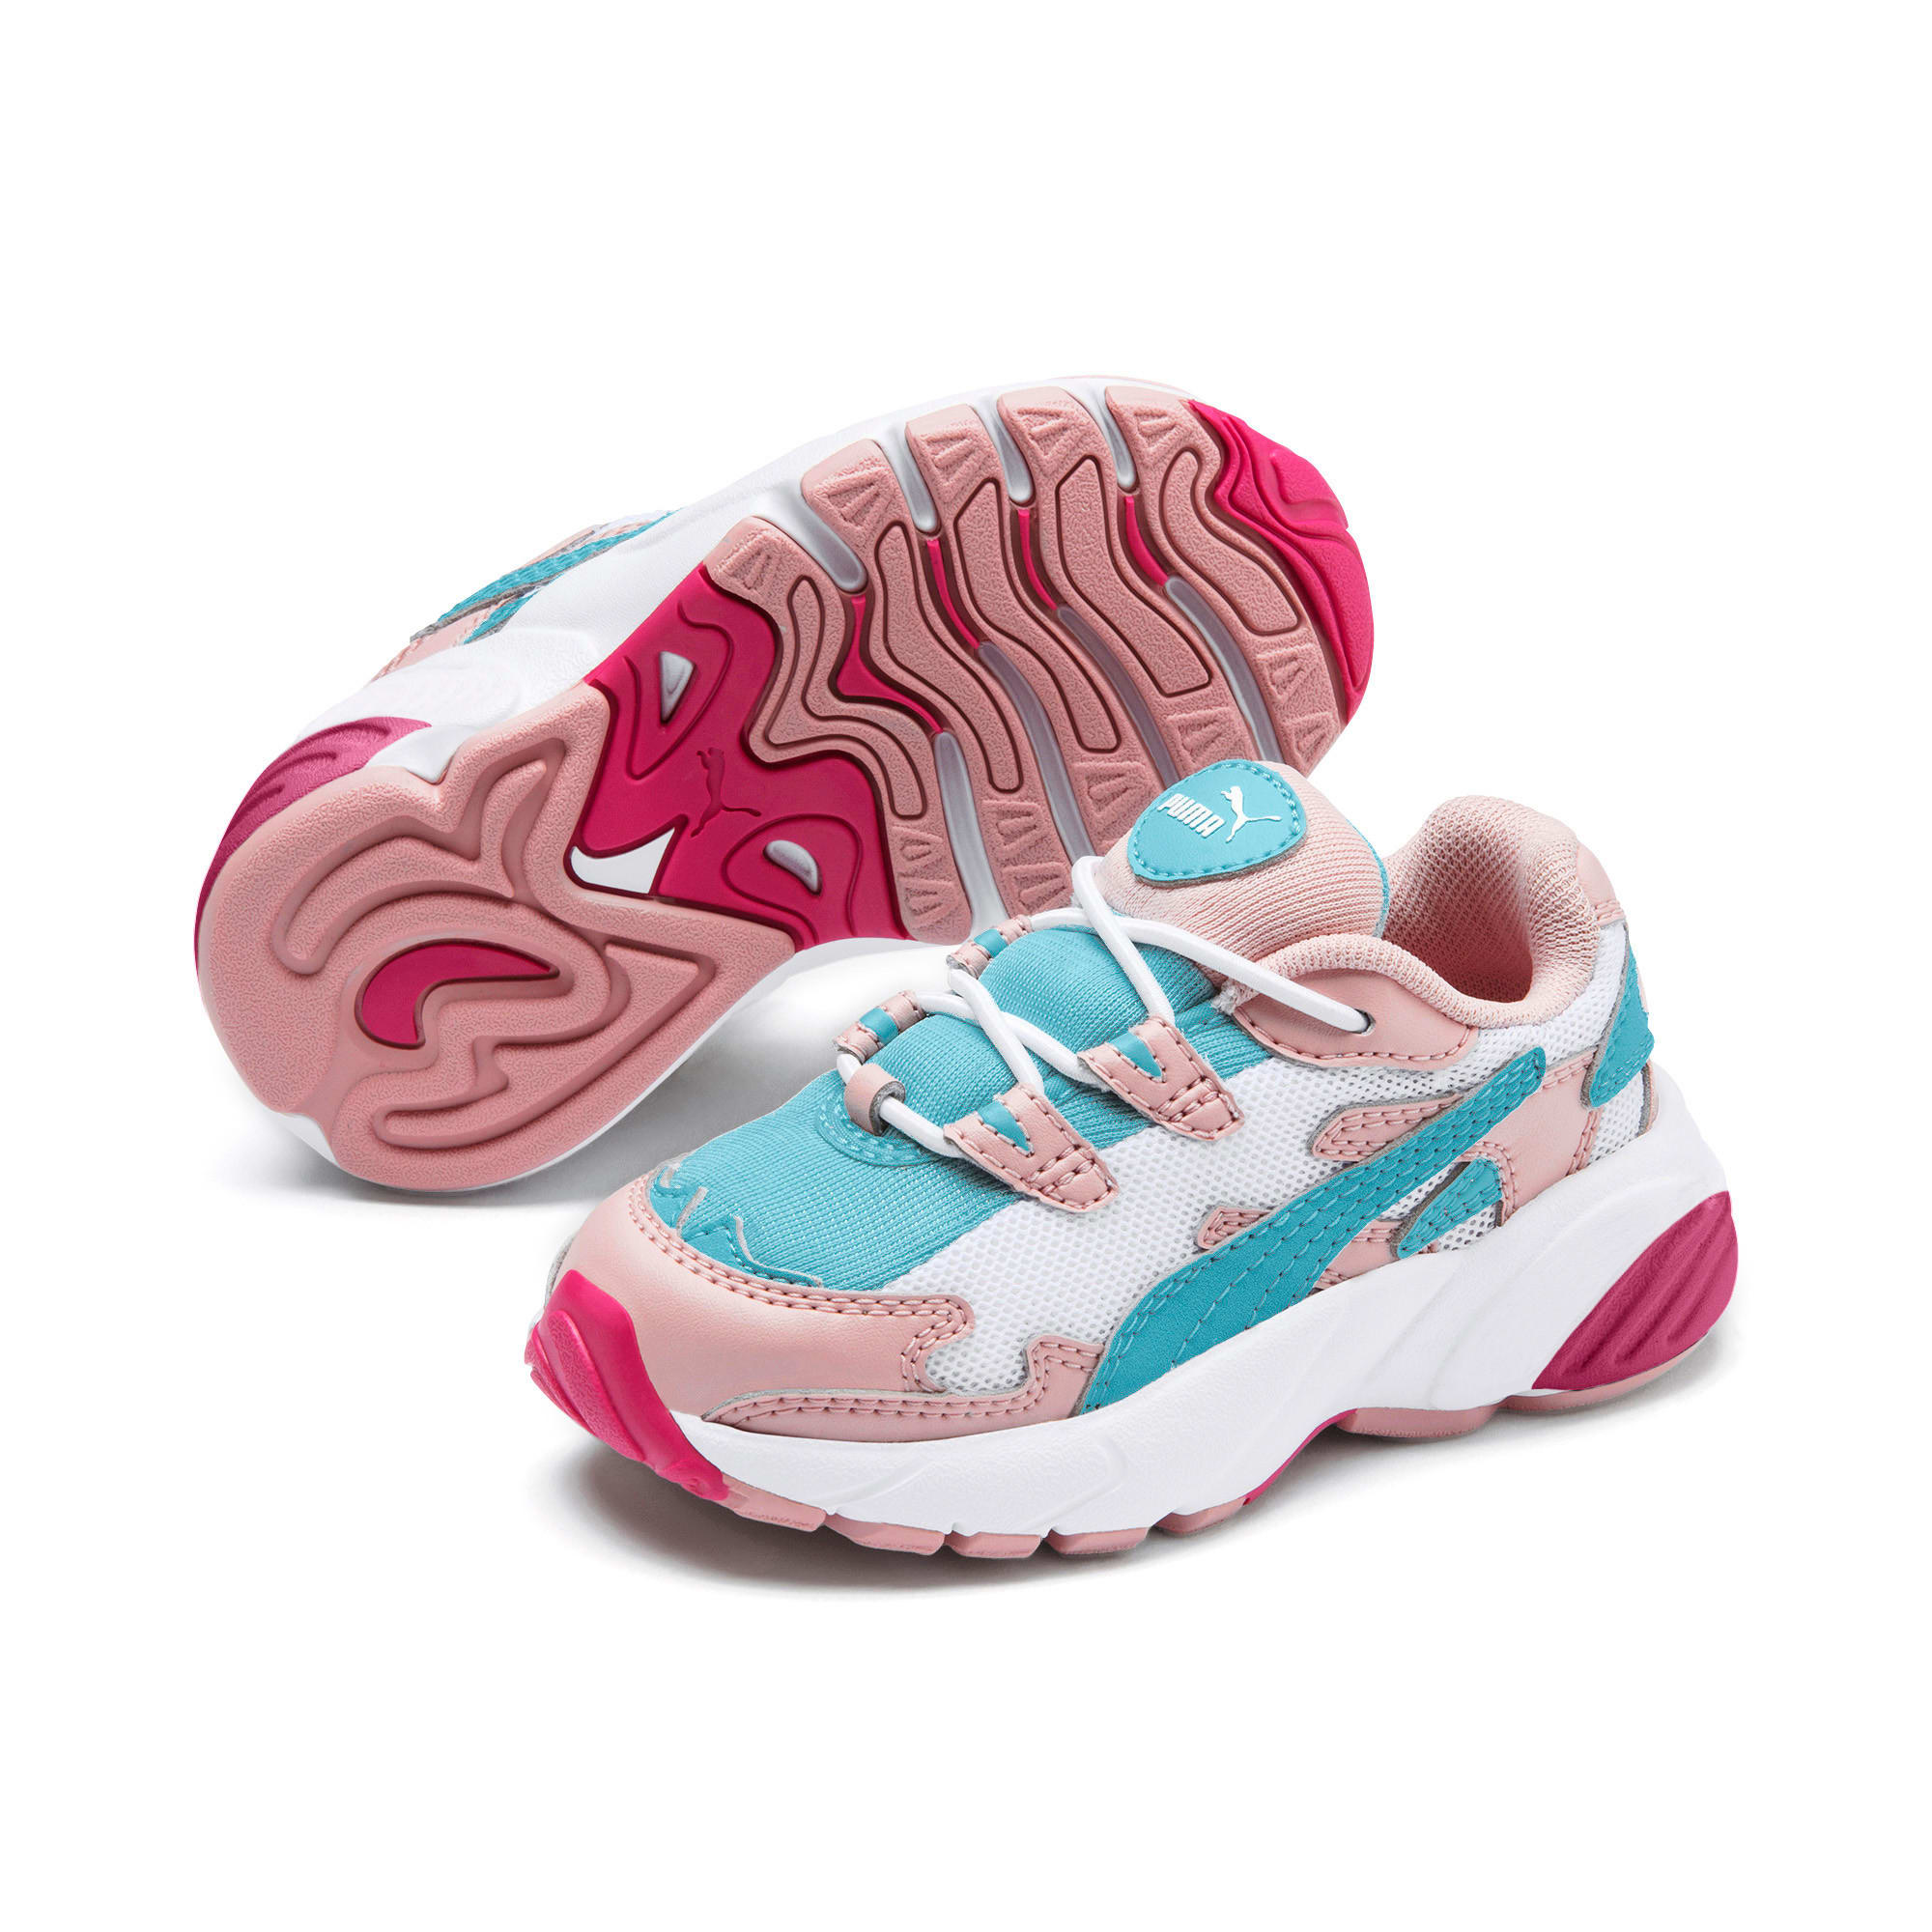 Thumbnail 2 of CELL Alien Cosmic Babies' Trainers, Bridal Rose-Milky Blue, medium